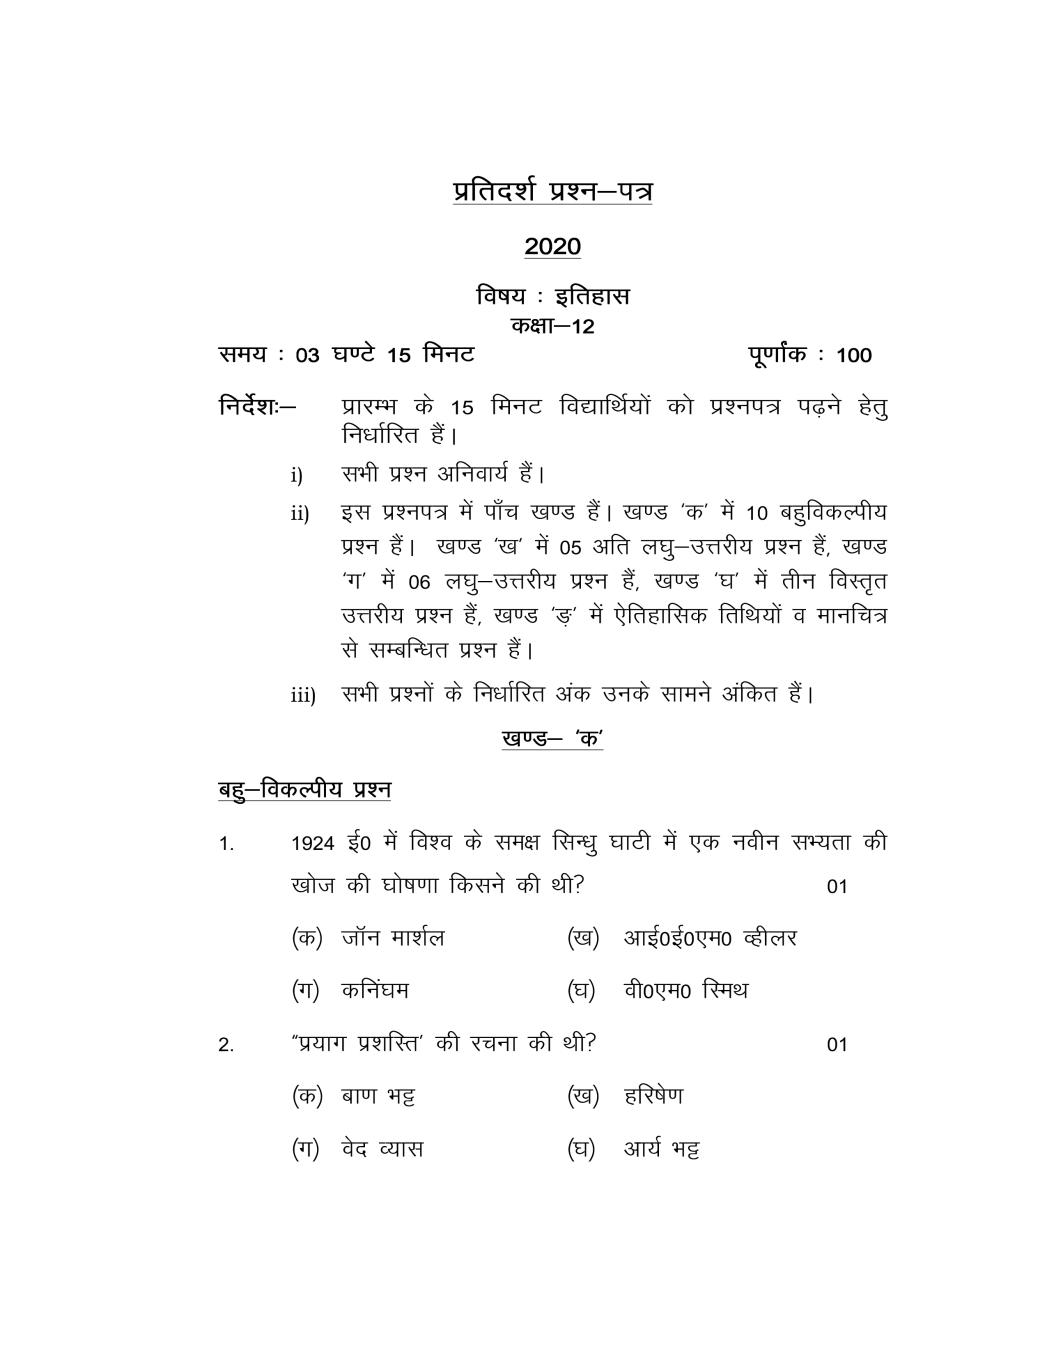 UP Board Model Paper 2020 Class 12th – History